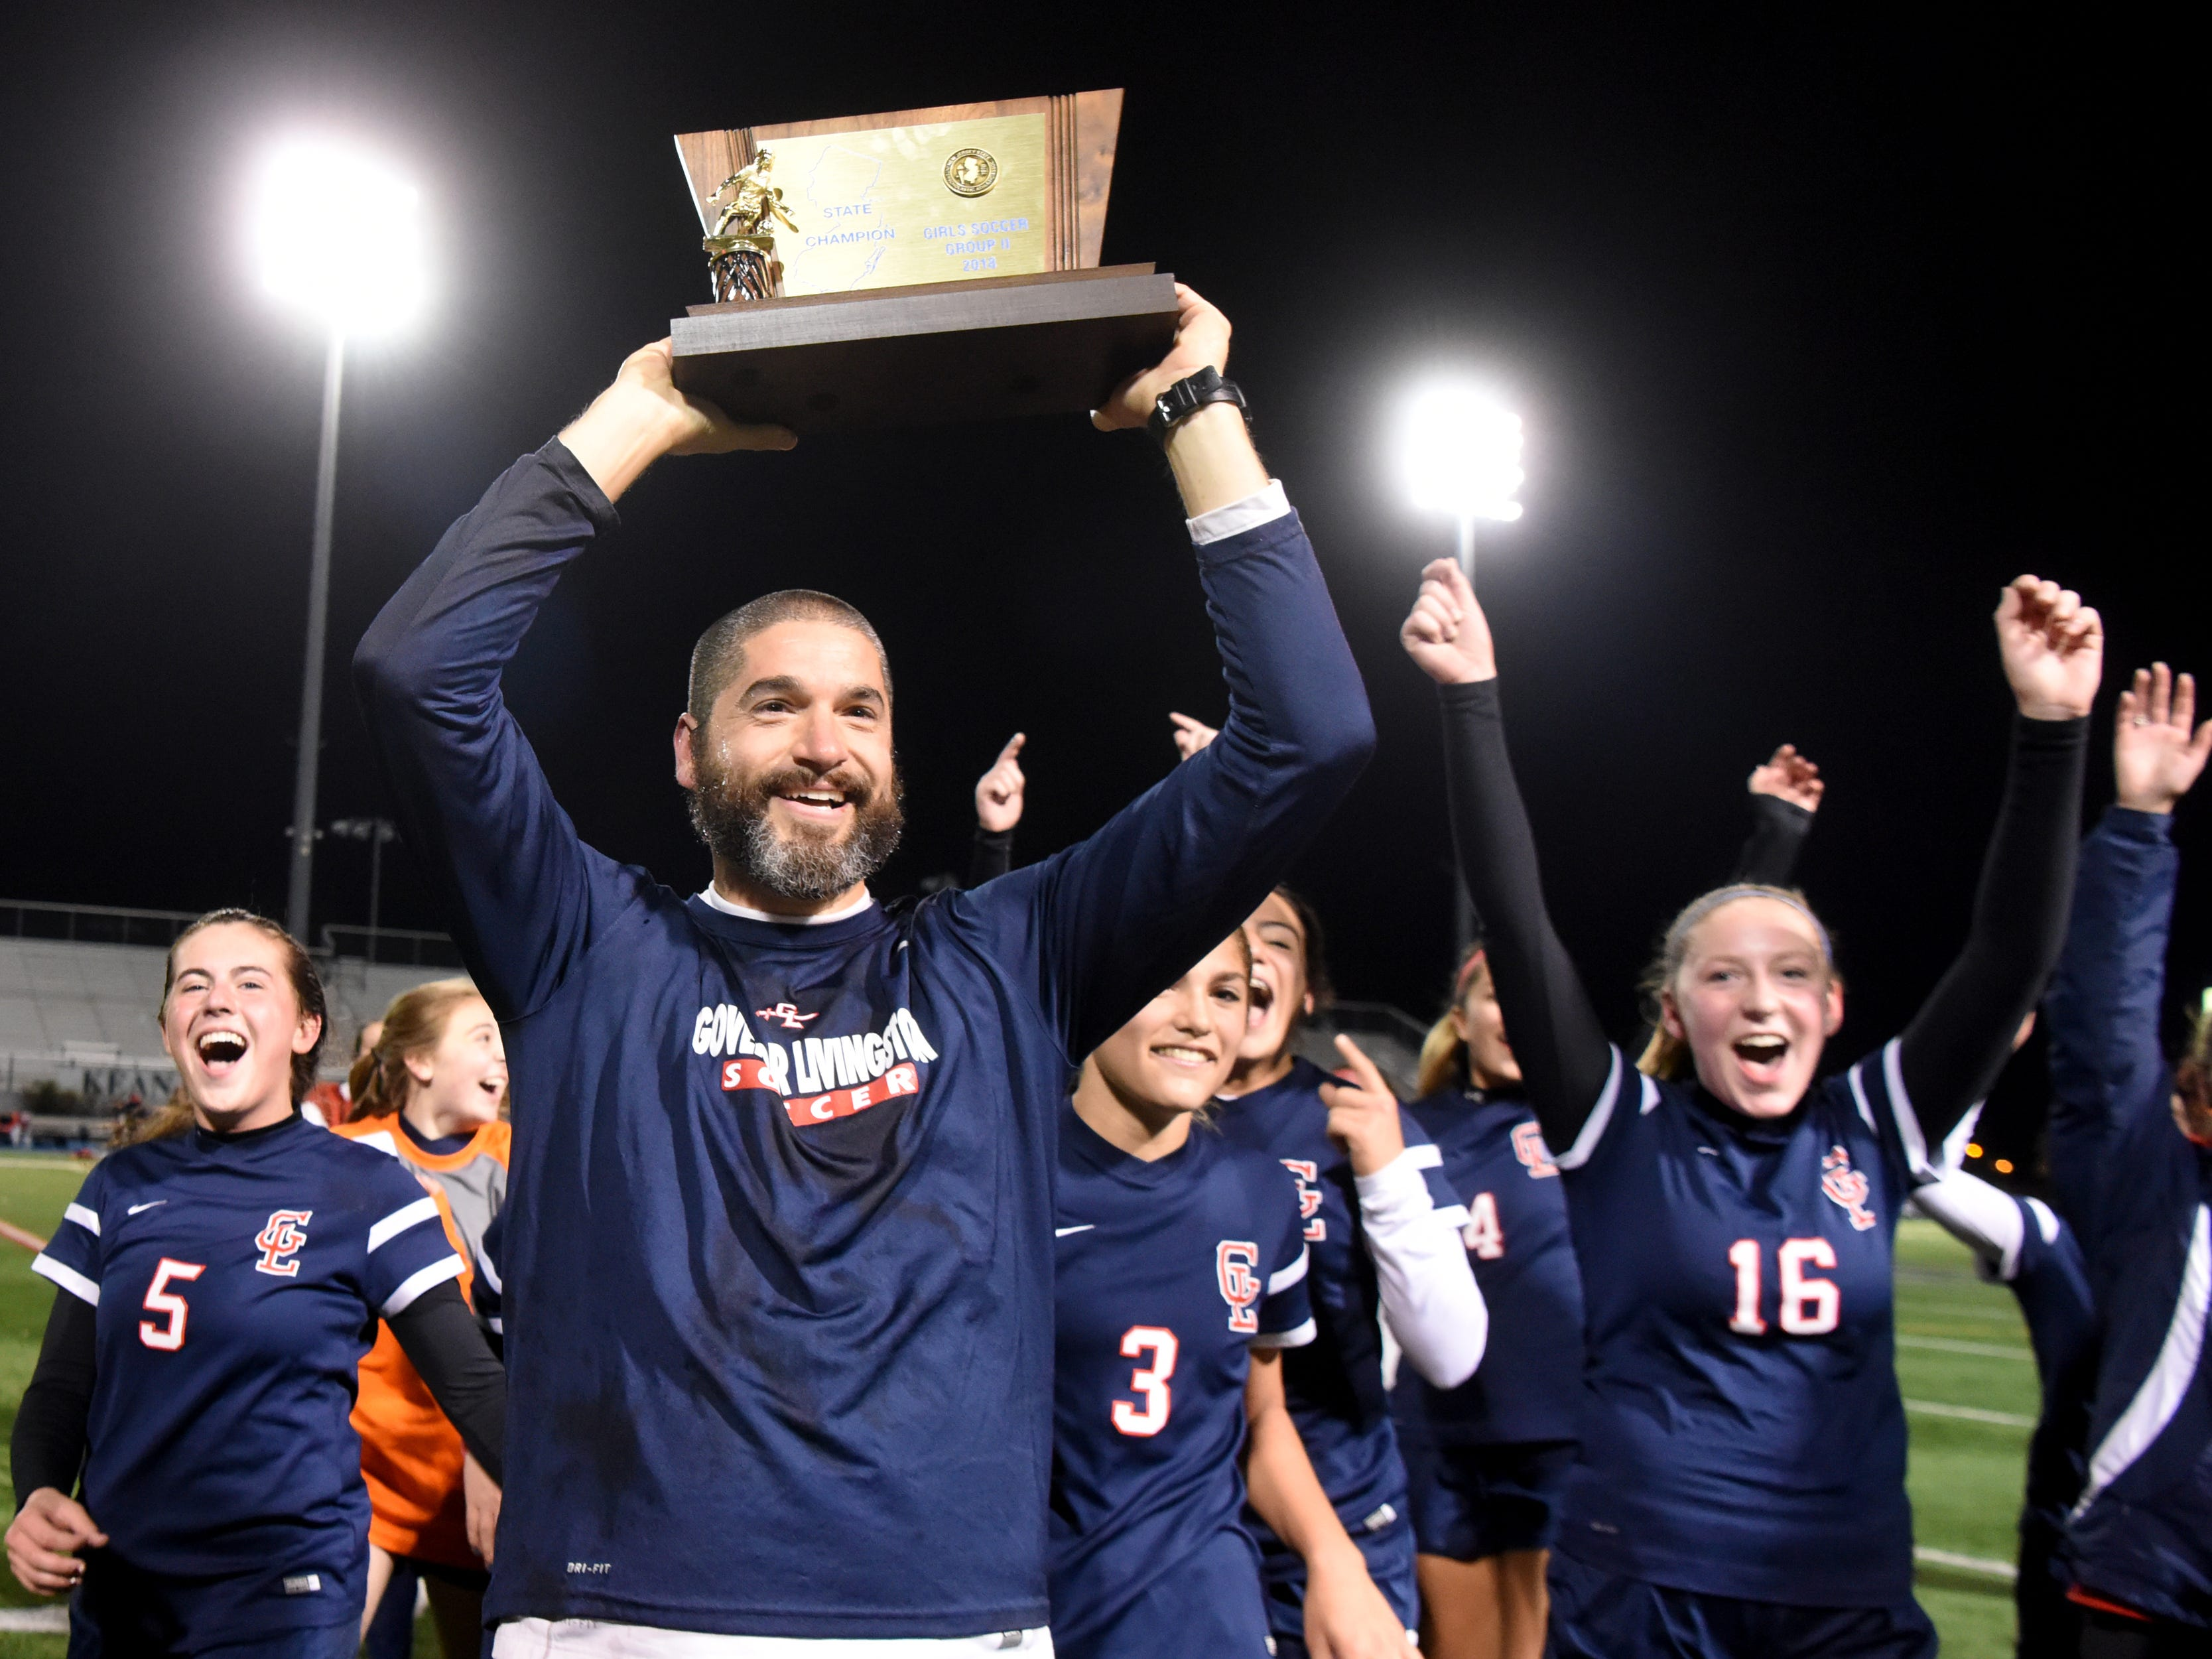 Governor Livingston head coach Mike Roof celebrates with his players after their Group II victory over Ramsey on Sunday, Nov. 18, 2018 at Kean University.